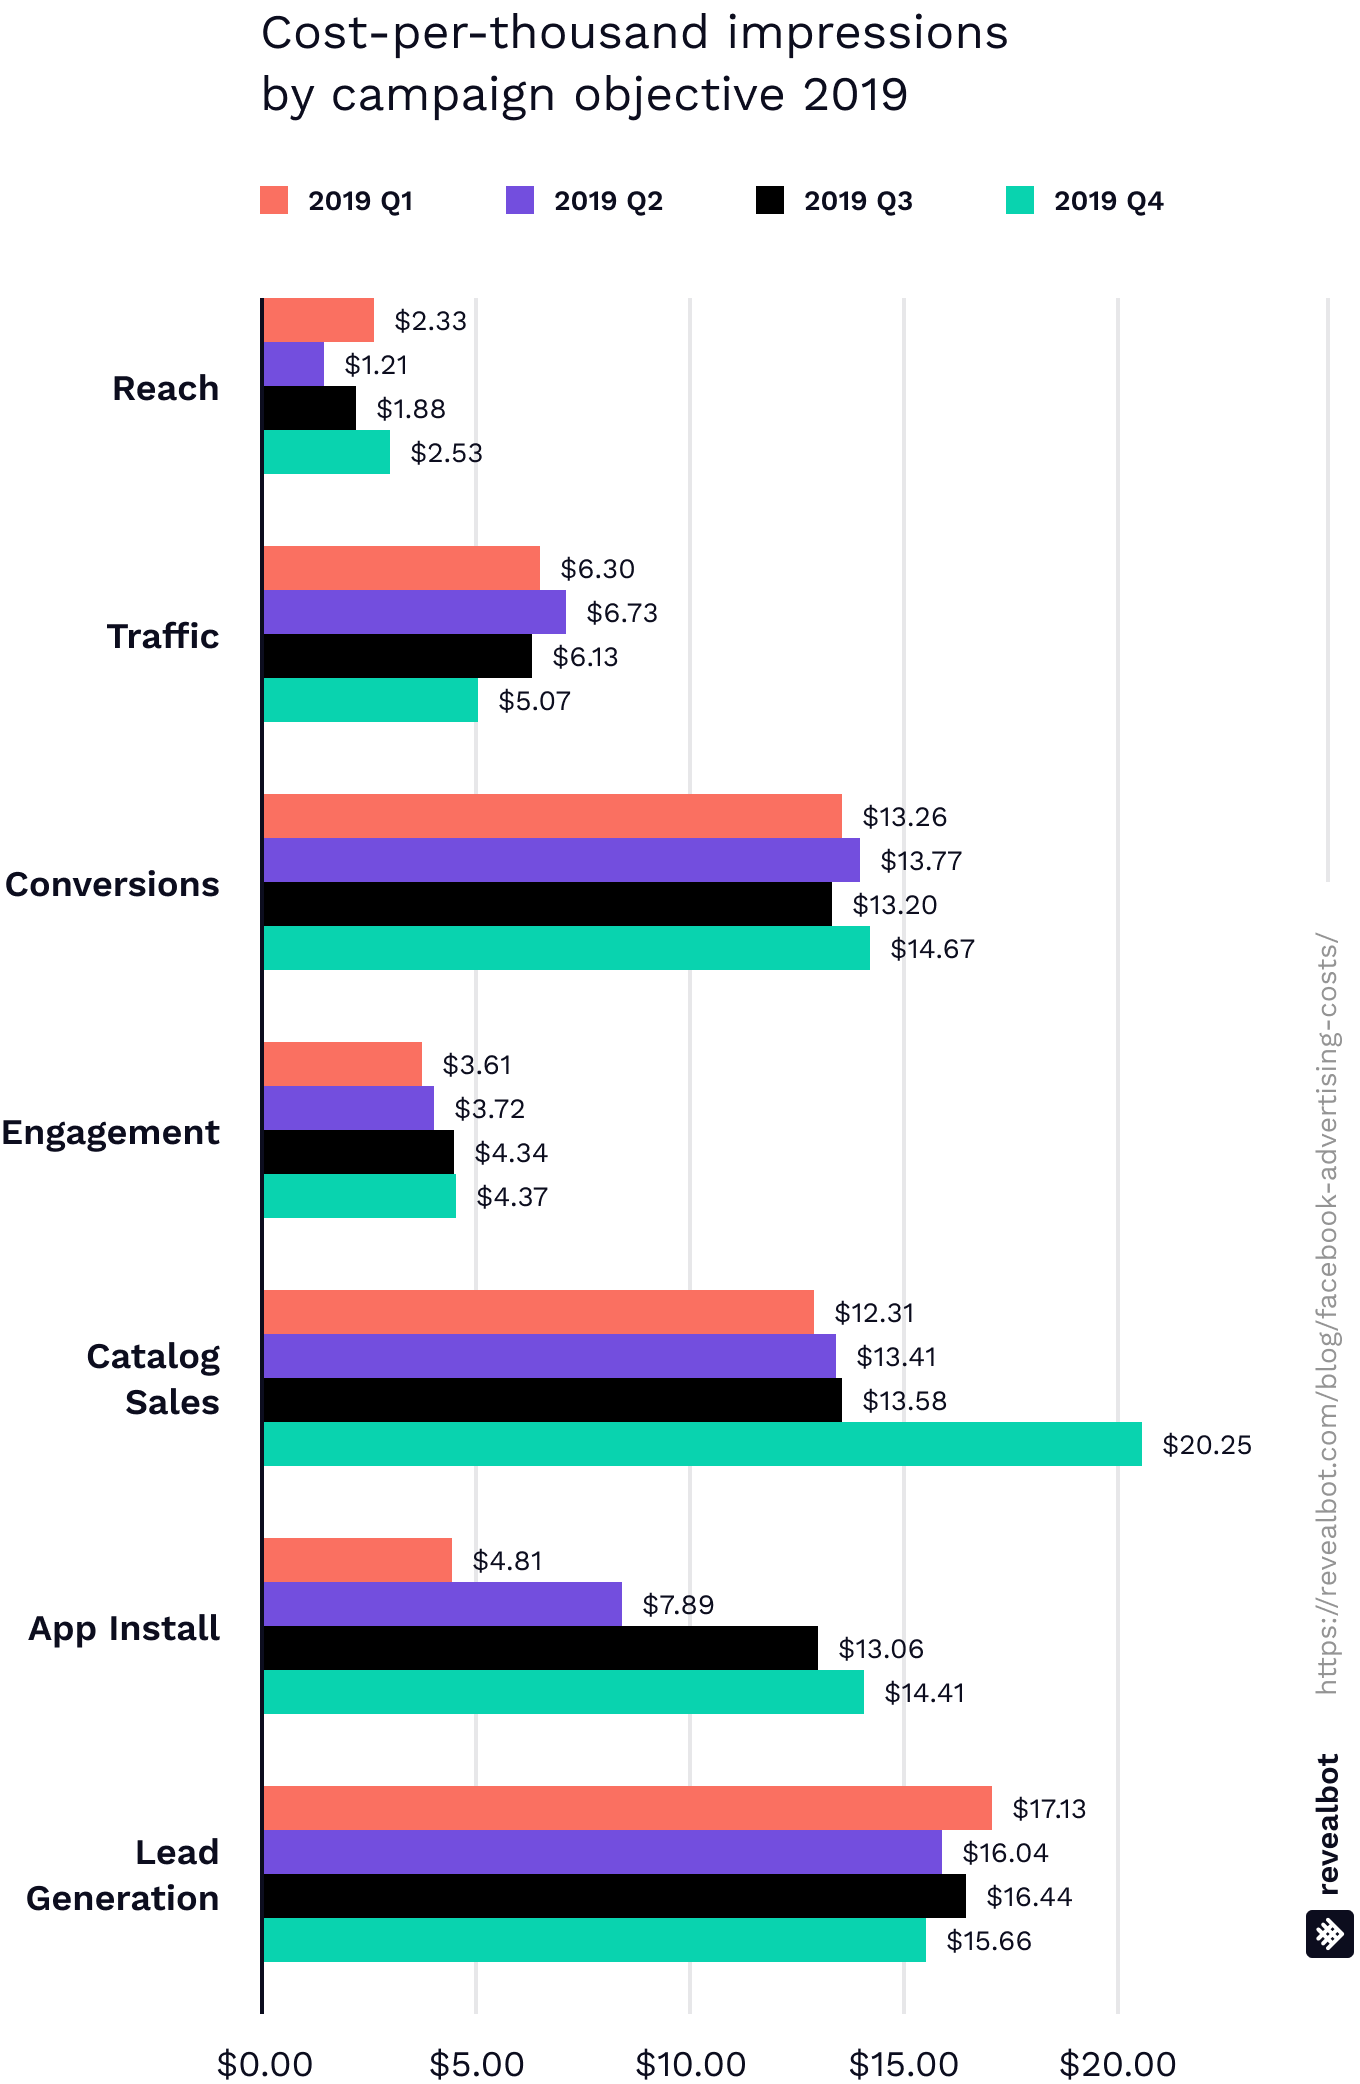 Average cost per impression CPM for Facebook ads by campaign objective 2019